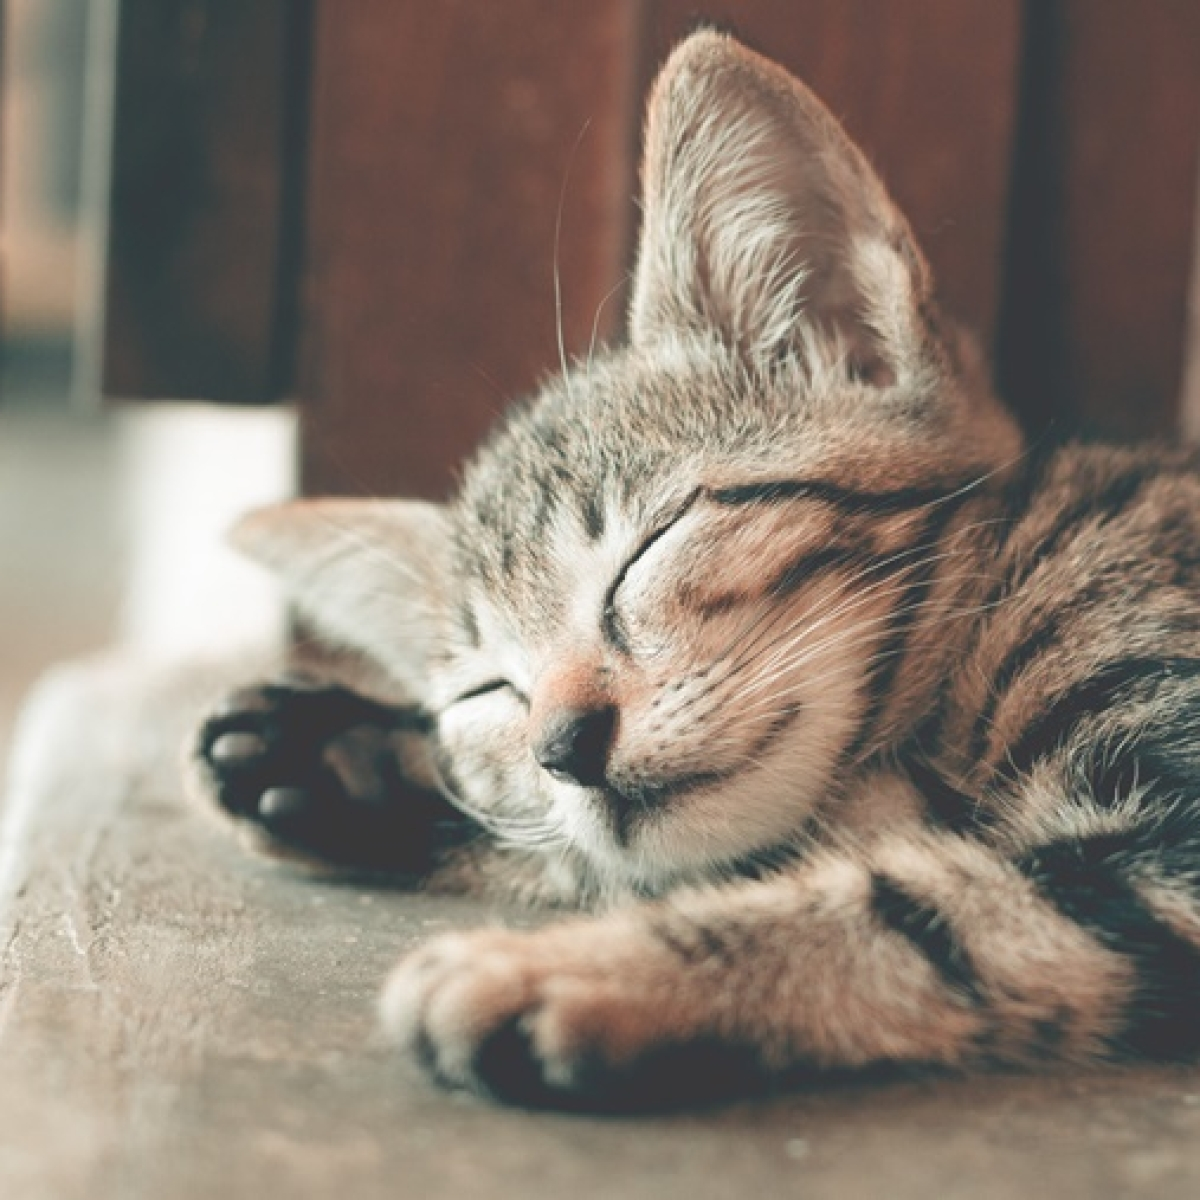 2 cats in New York become first US pets to test positive for coronavirus